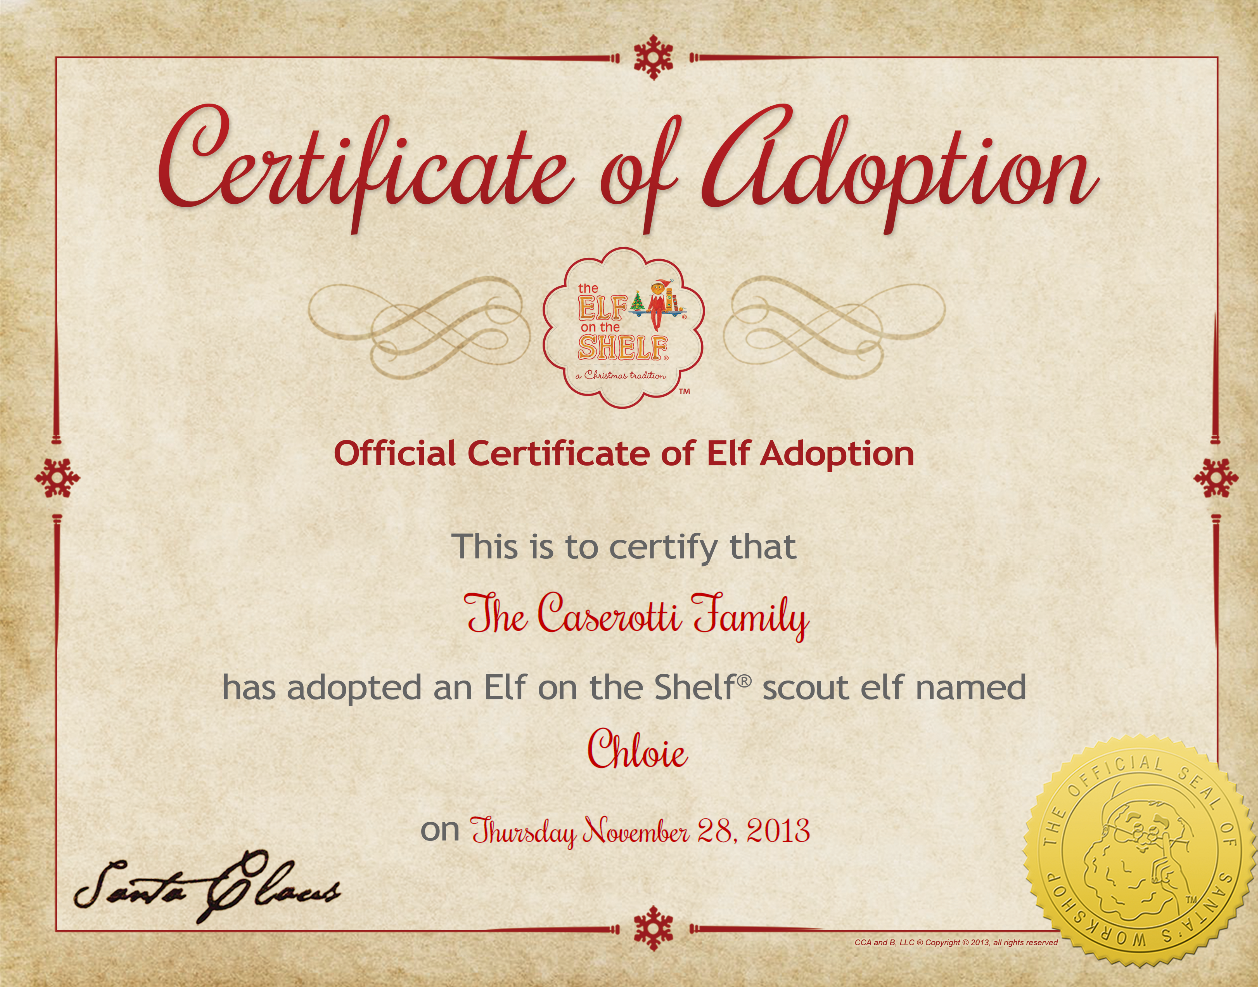 Heres The Printable Certificate Of Adoption For Elf On The Shelf